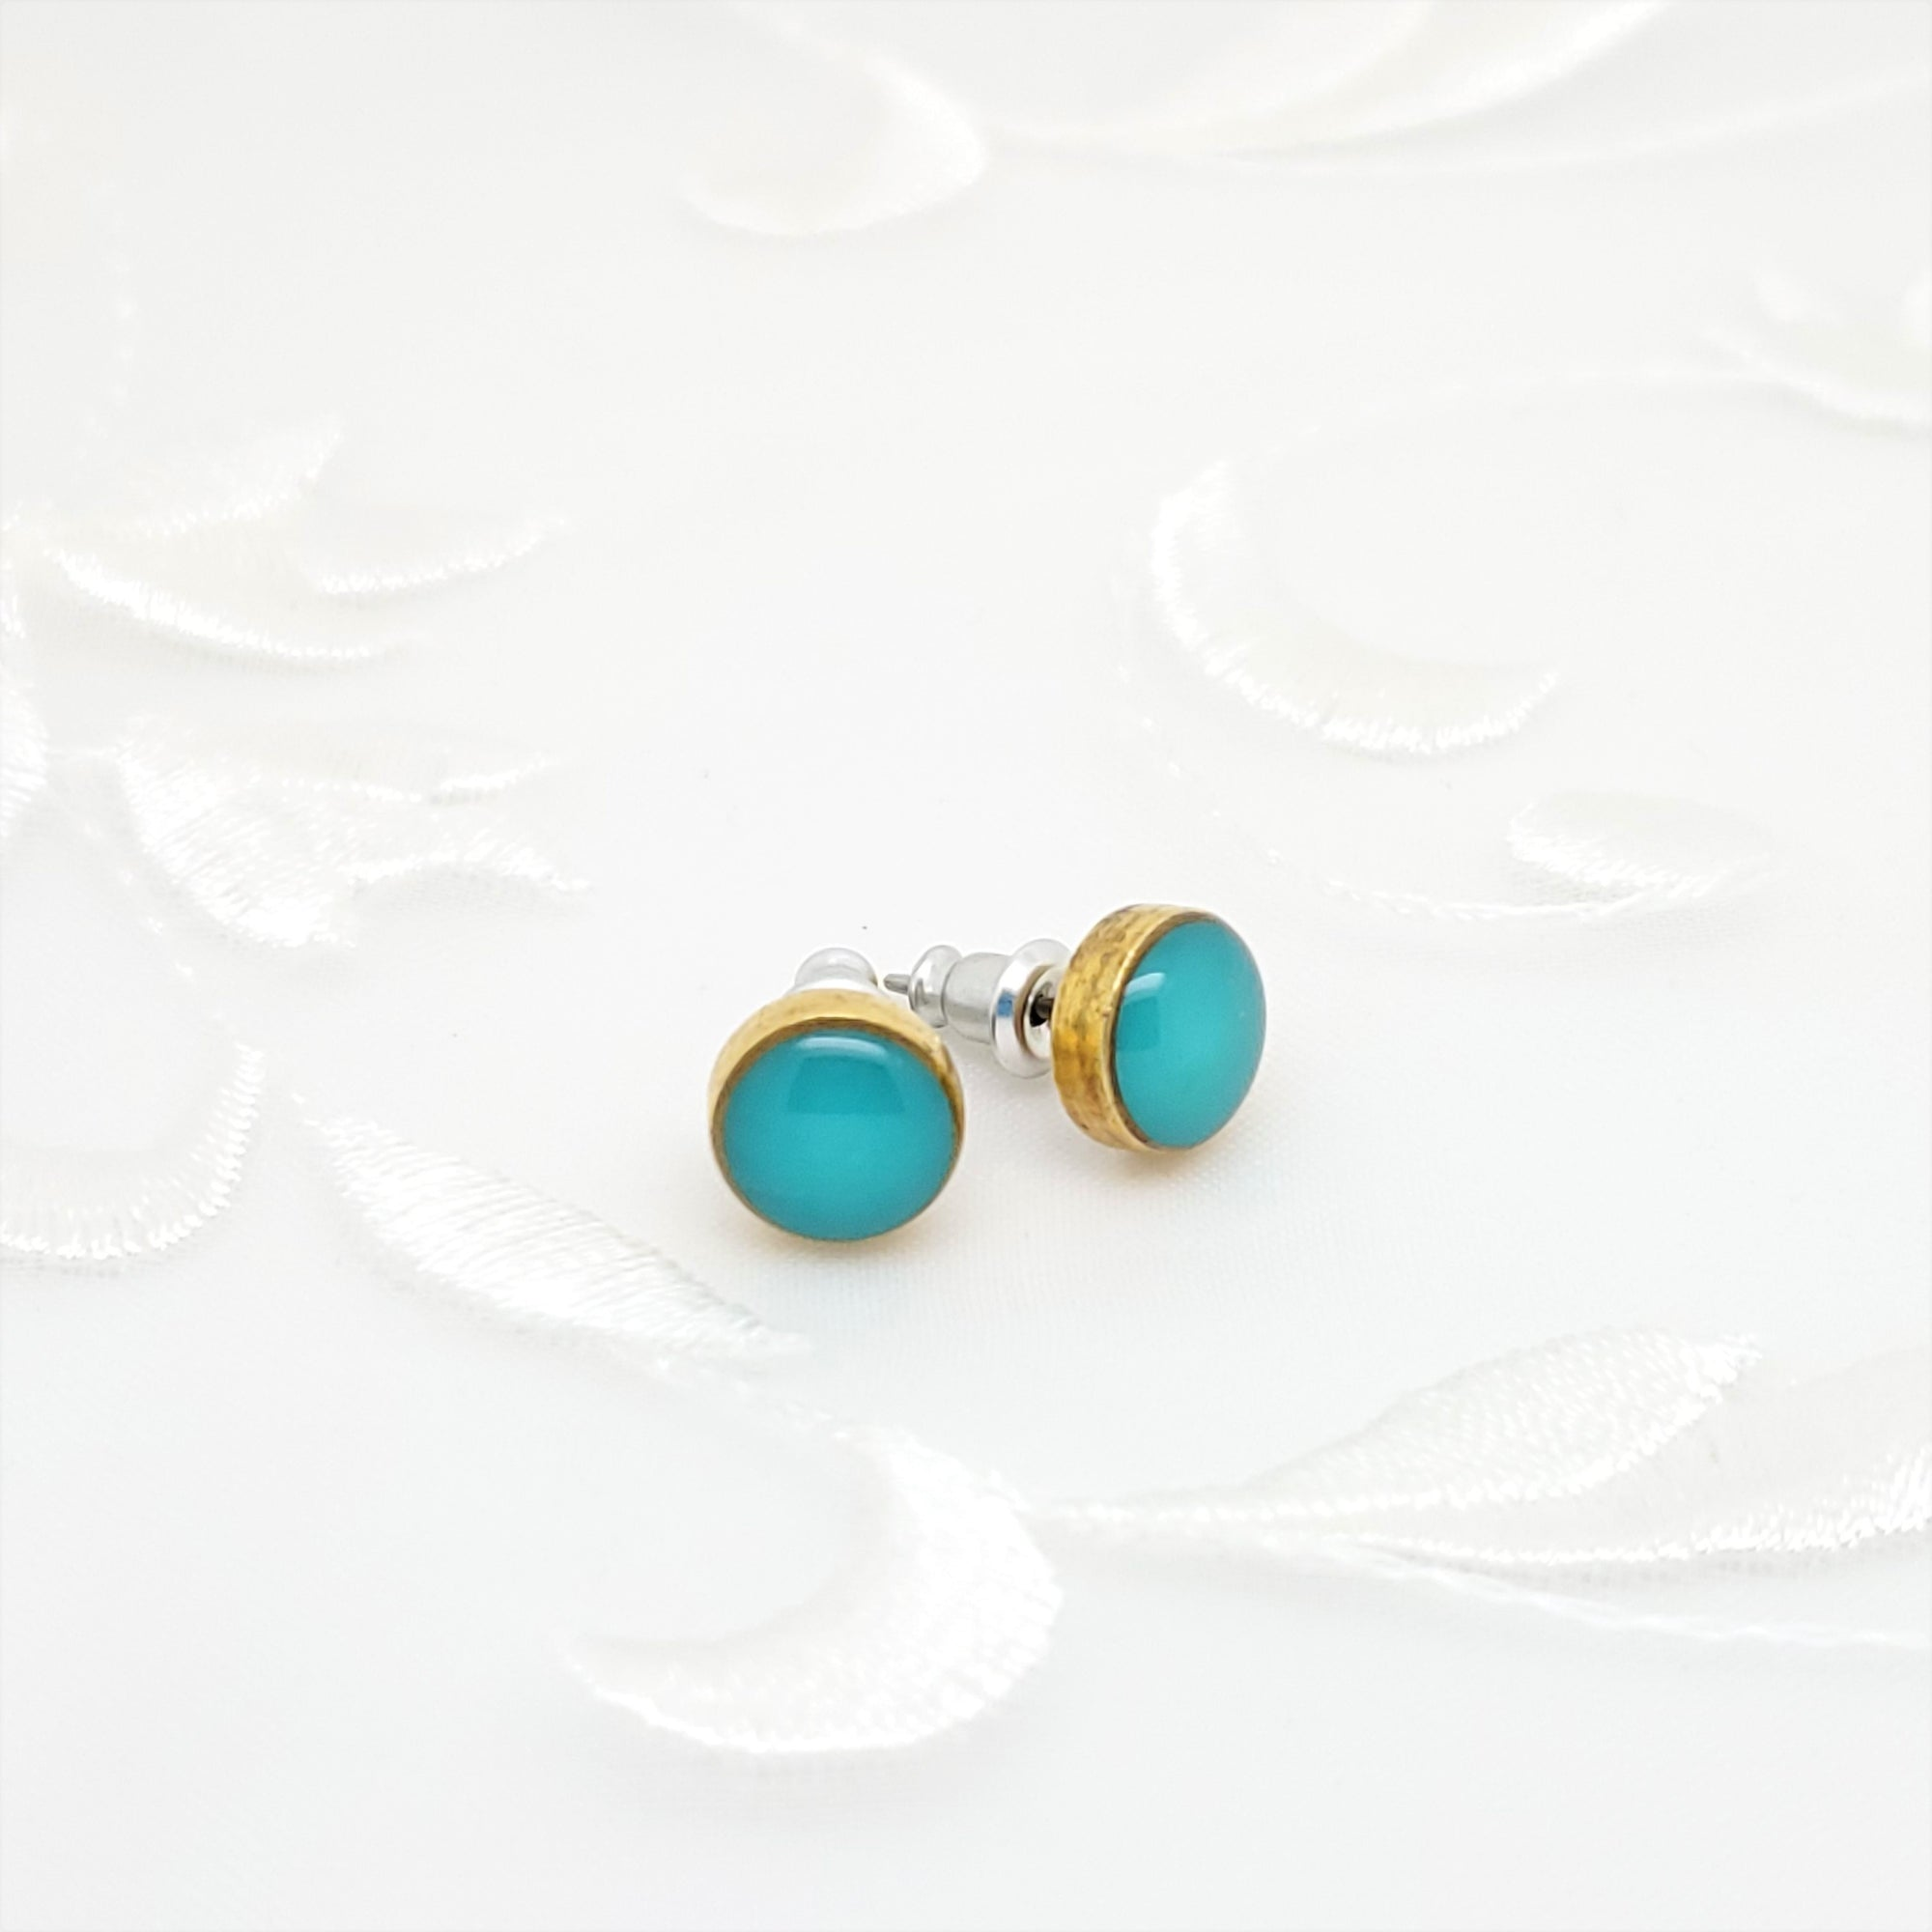 Antique Gold Round Stud Earrings with Turquoise Resin